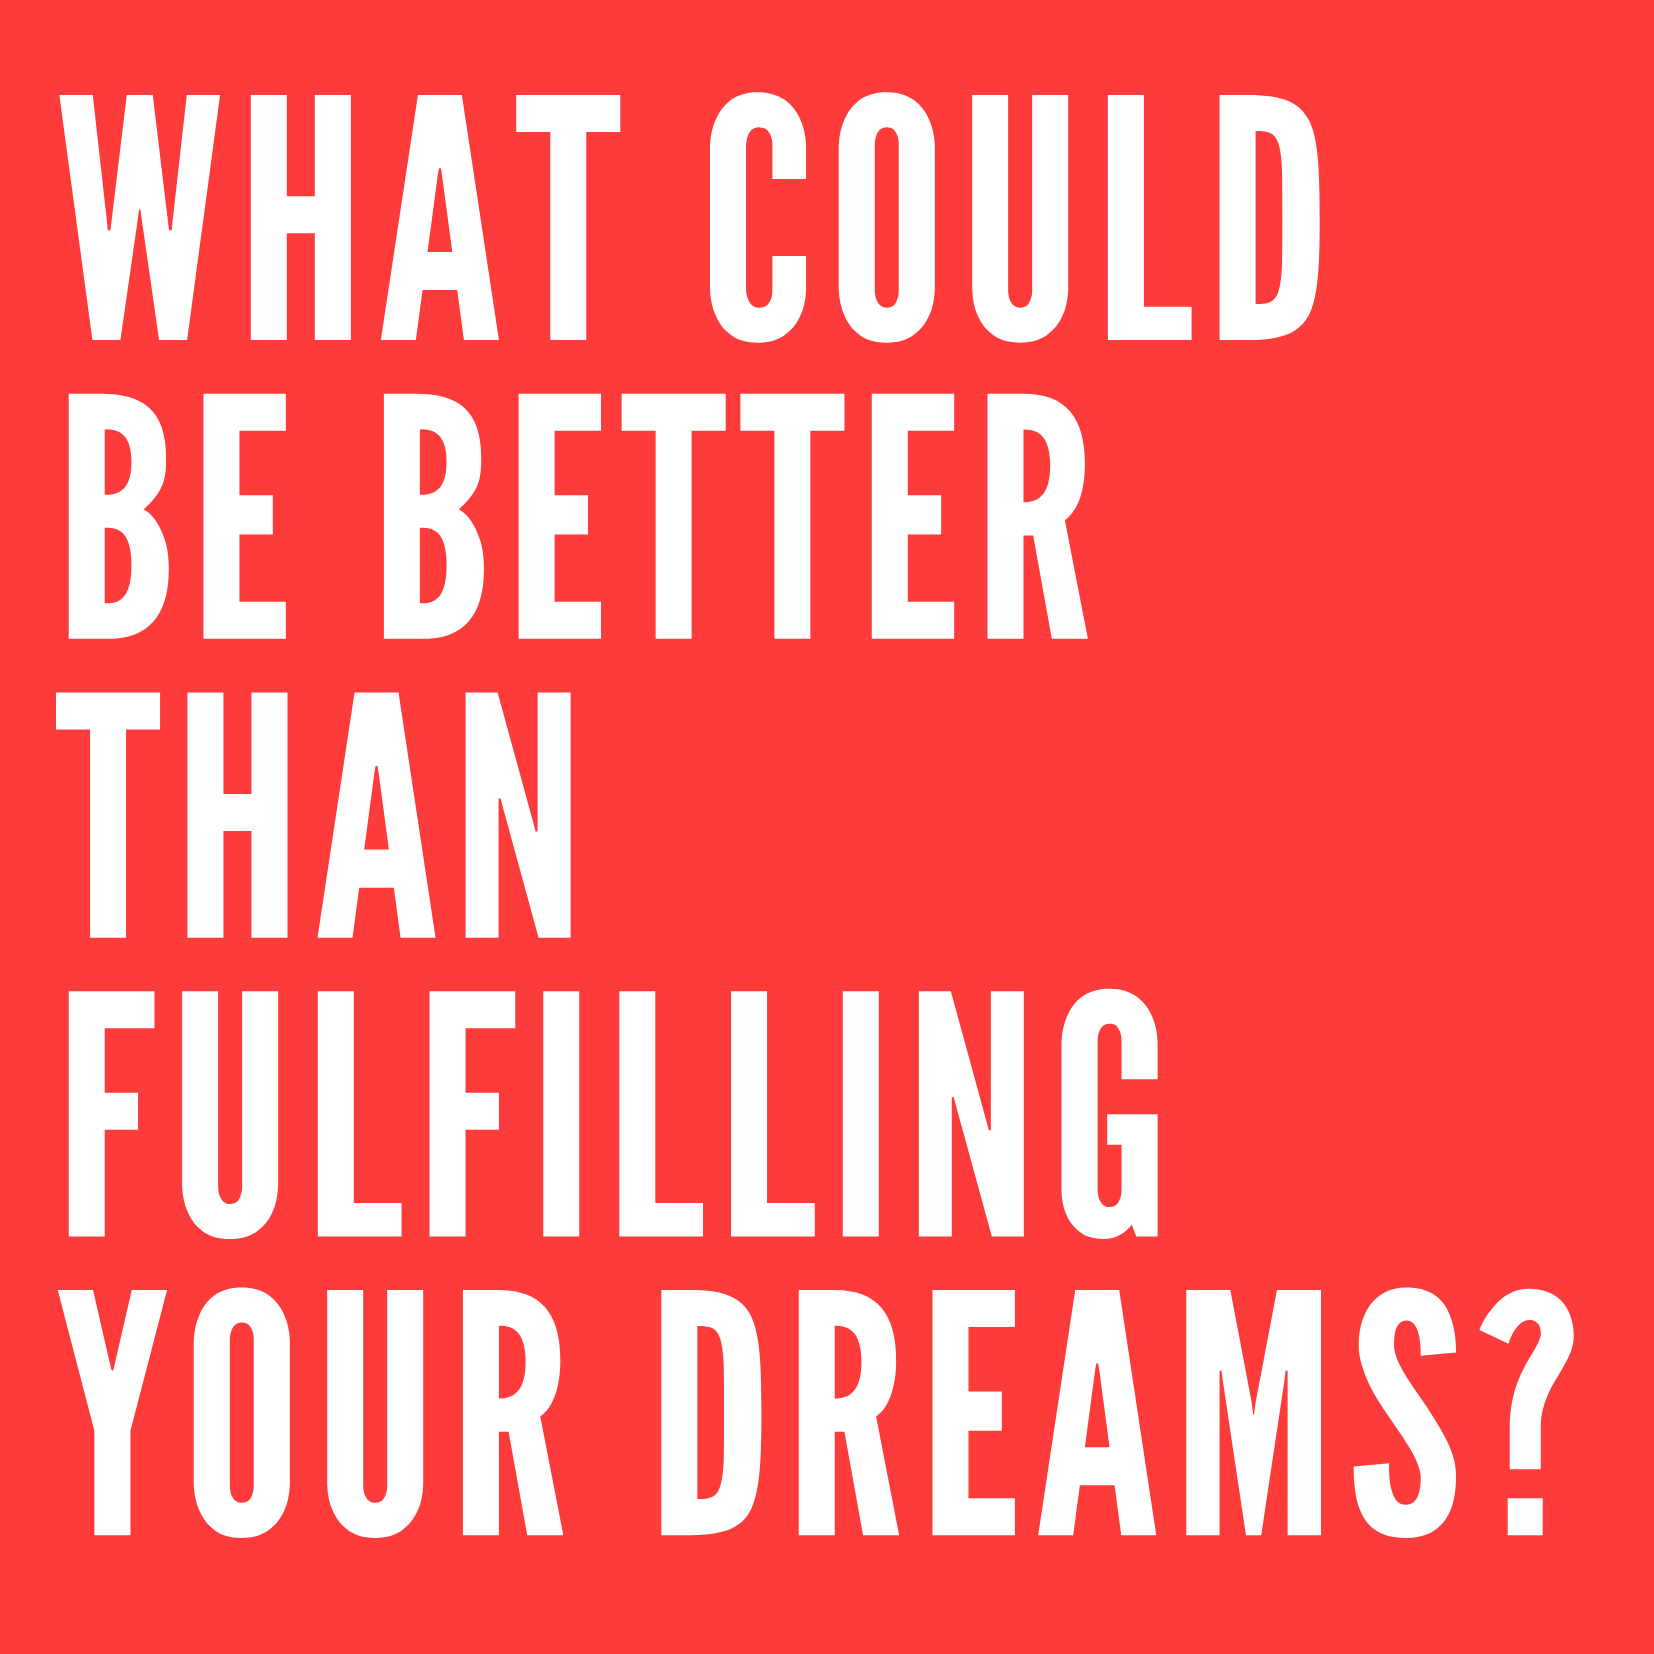 What could be better than fulfilling your dreams?